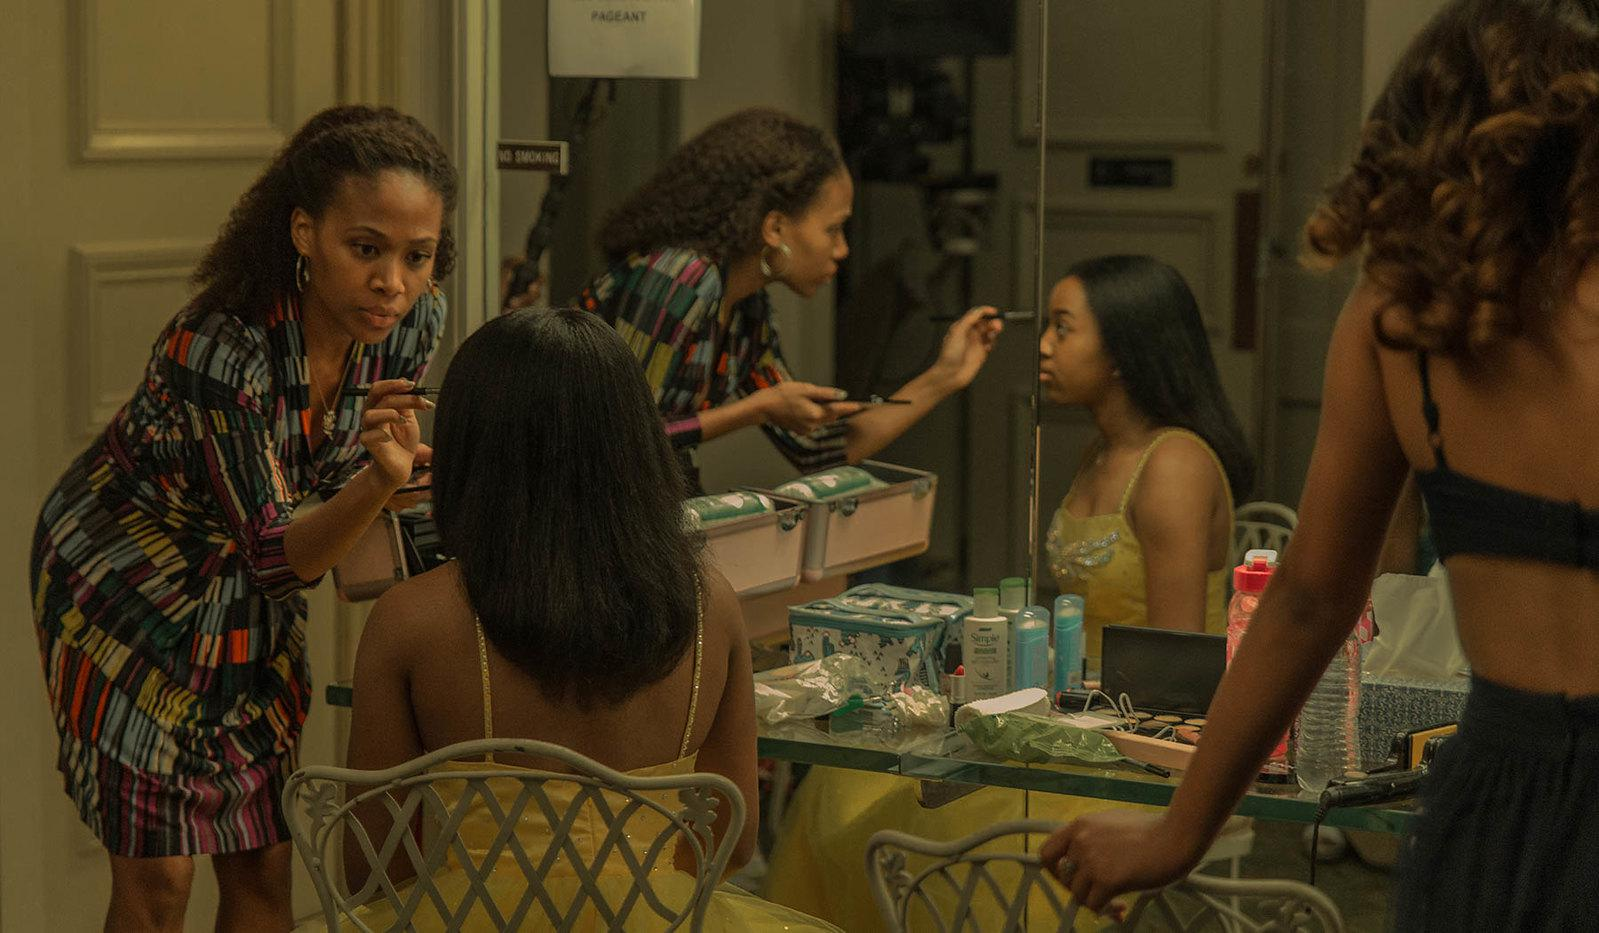 'Miss Juneteenth' brings slice of African-American life to Sundance